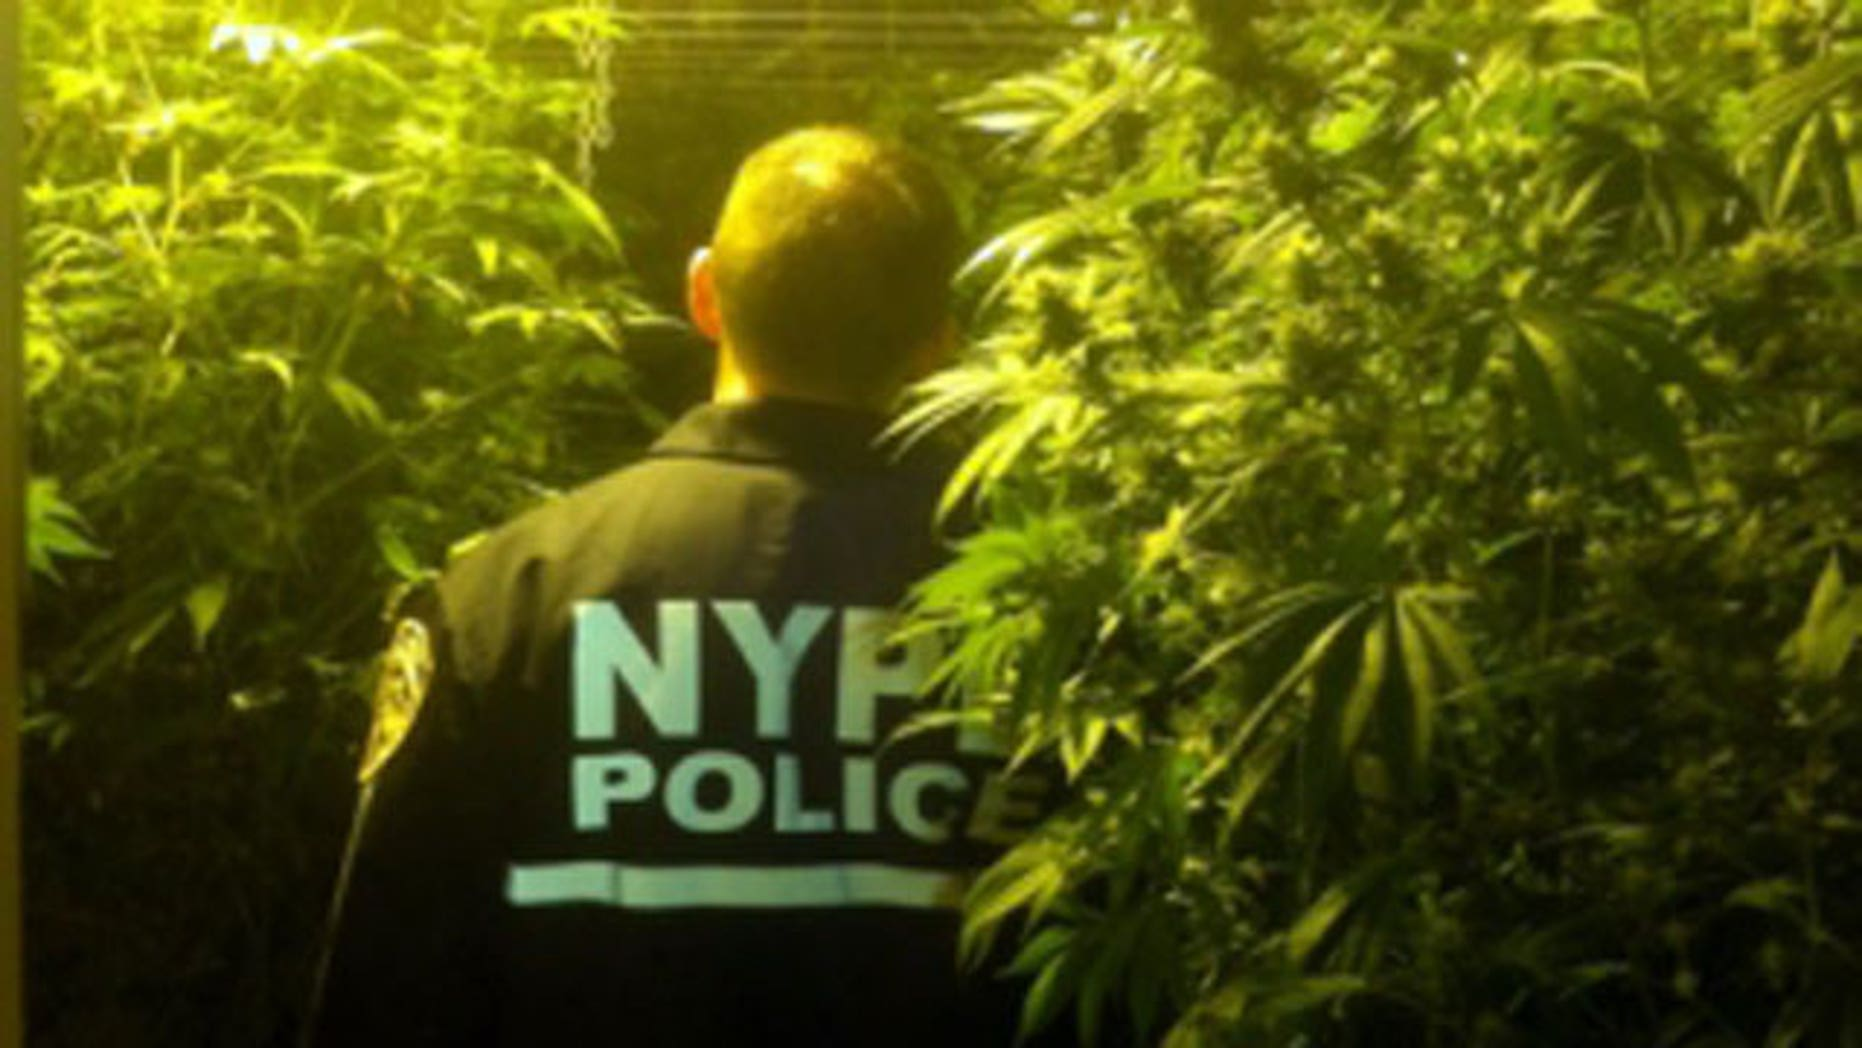 January 31, 2012: Scene of raid on Bronx building that contained 600 marijuana plants.